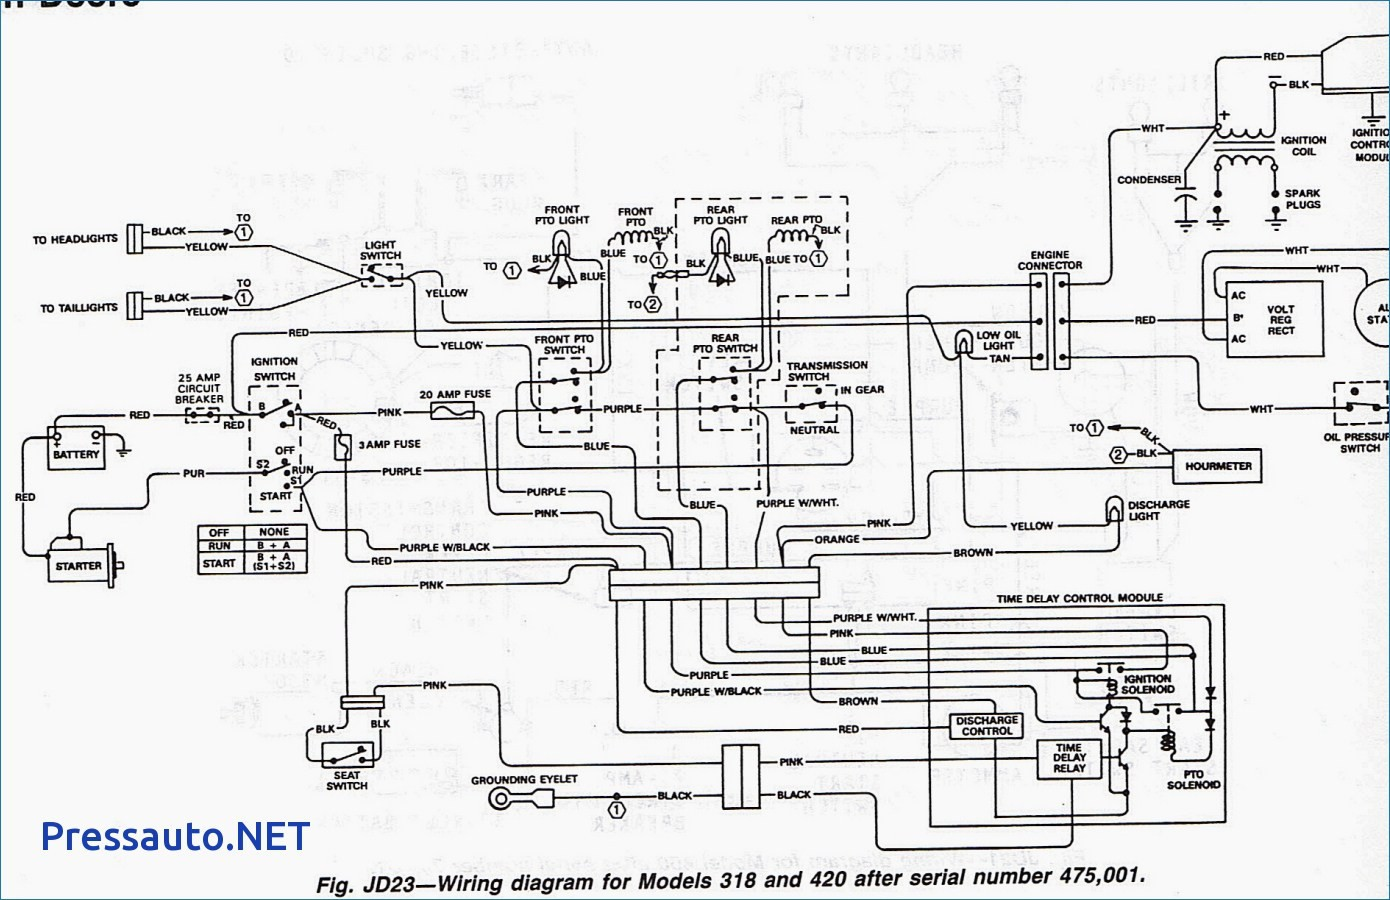 John Deere 855 Pto Wiring Diagram Library. Wiring Diagram For John Deere L120 Lawn Tractor. John Deere. John Deere L120 Lawn Mower Electrical Diagram At Scoala.co